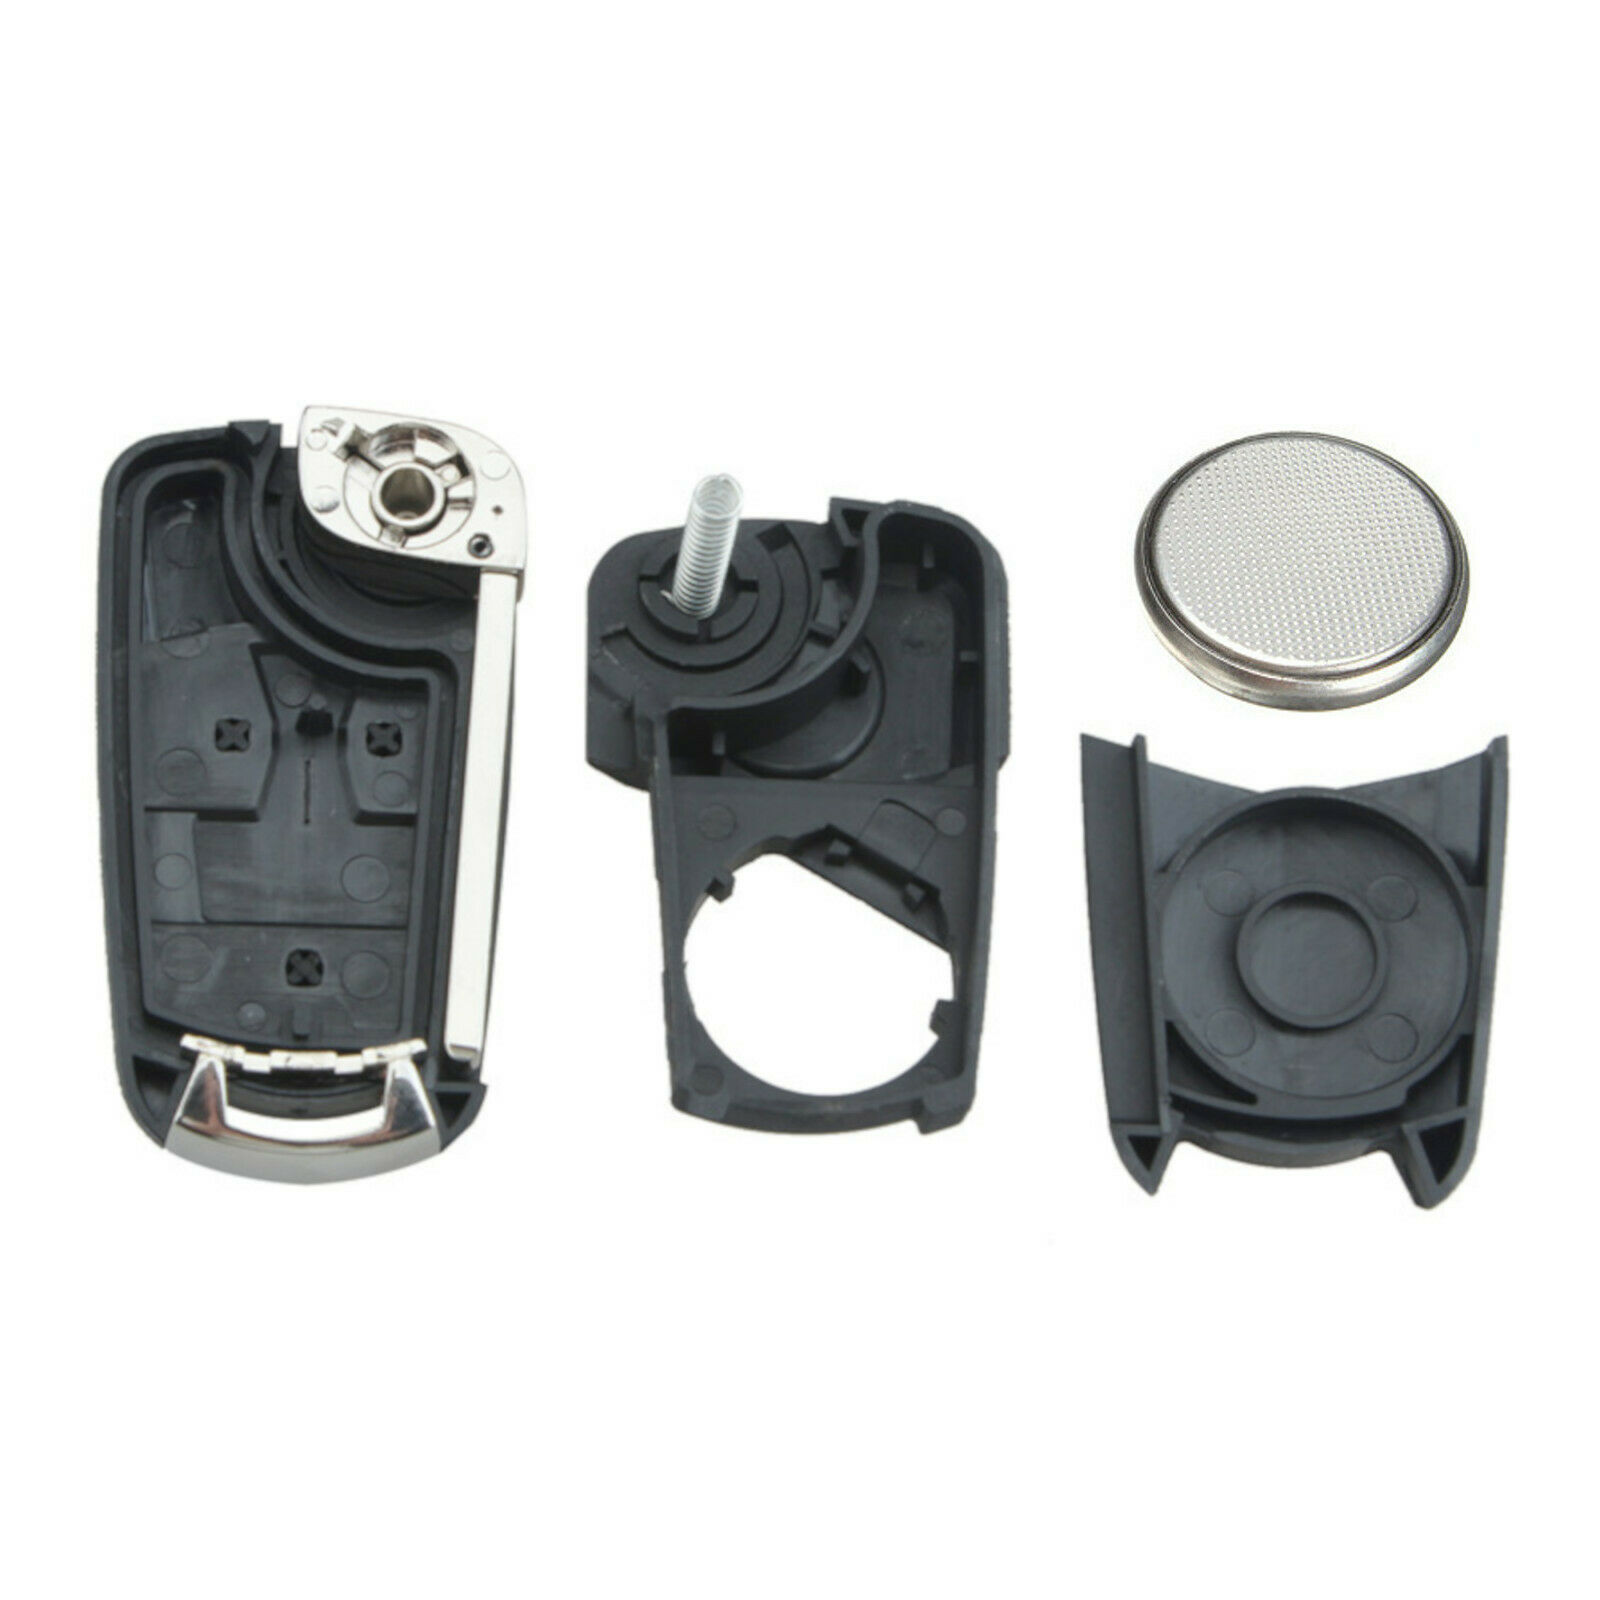 2 Button Remote Car Key Fob Case w/ Battery for Vauxhall ...